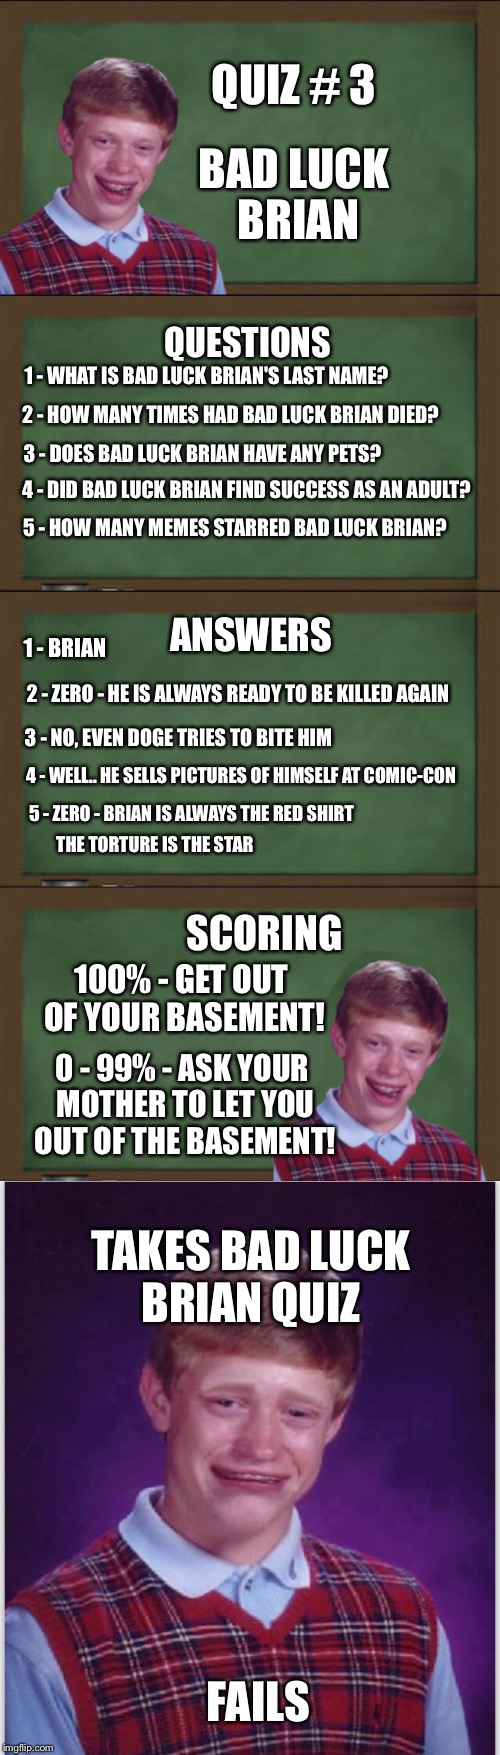 ***imgflip 101*** Do you know your template? Take the quiz.  | QUIZ # 3 BAD LUCK BRIAN QUESTIONS 1 - WHAT IS BAD LUCK BRIAN'S LAST NAME? 2 - HOW MANY TIMES HAD BAD LUCK BRIAN DIED? 3 - DOES BAD LUCK BRIA | image tagged in memes,bad luck brian,quizzes,welcome to imgflip | made w/ Imgflip meme maker